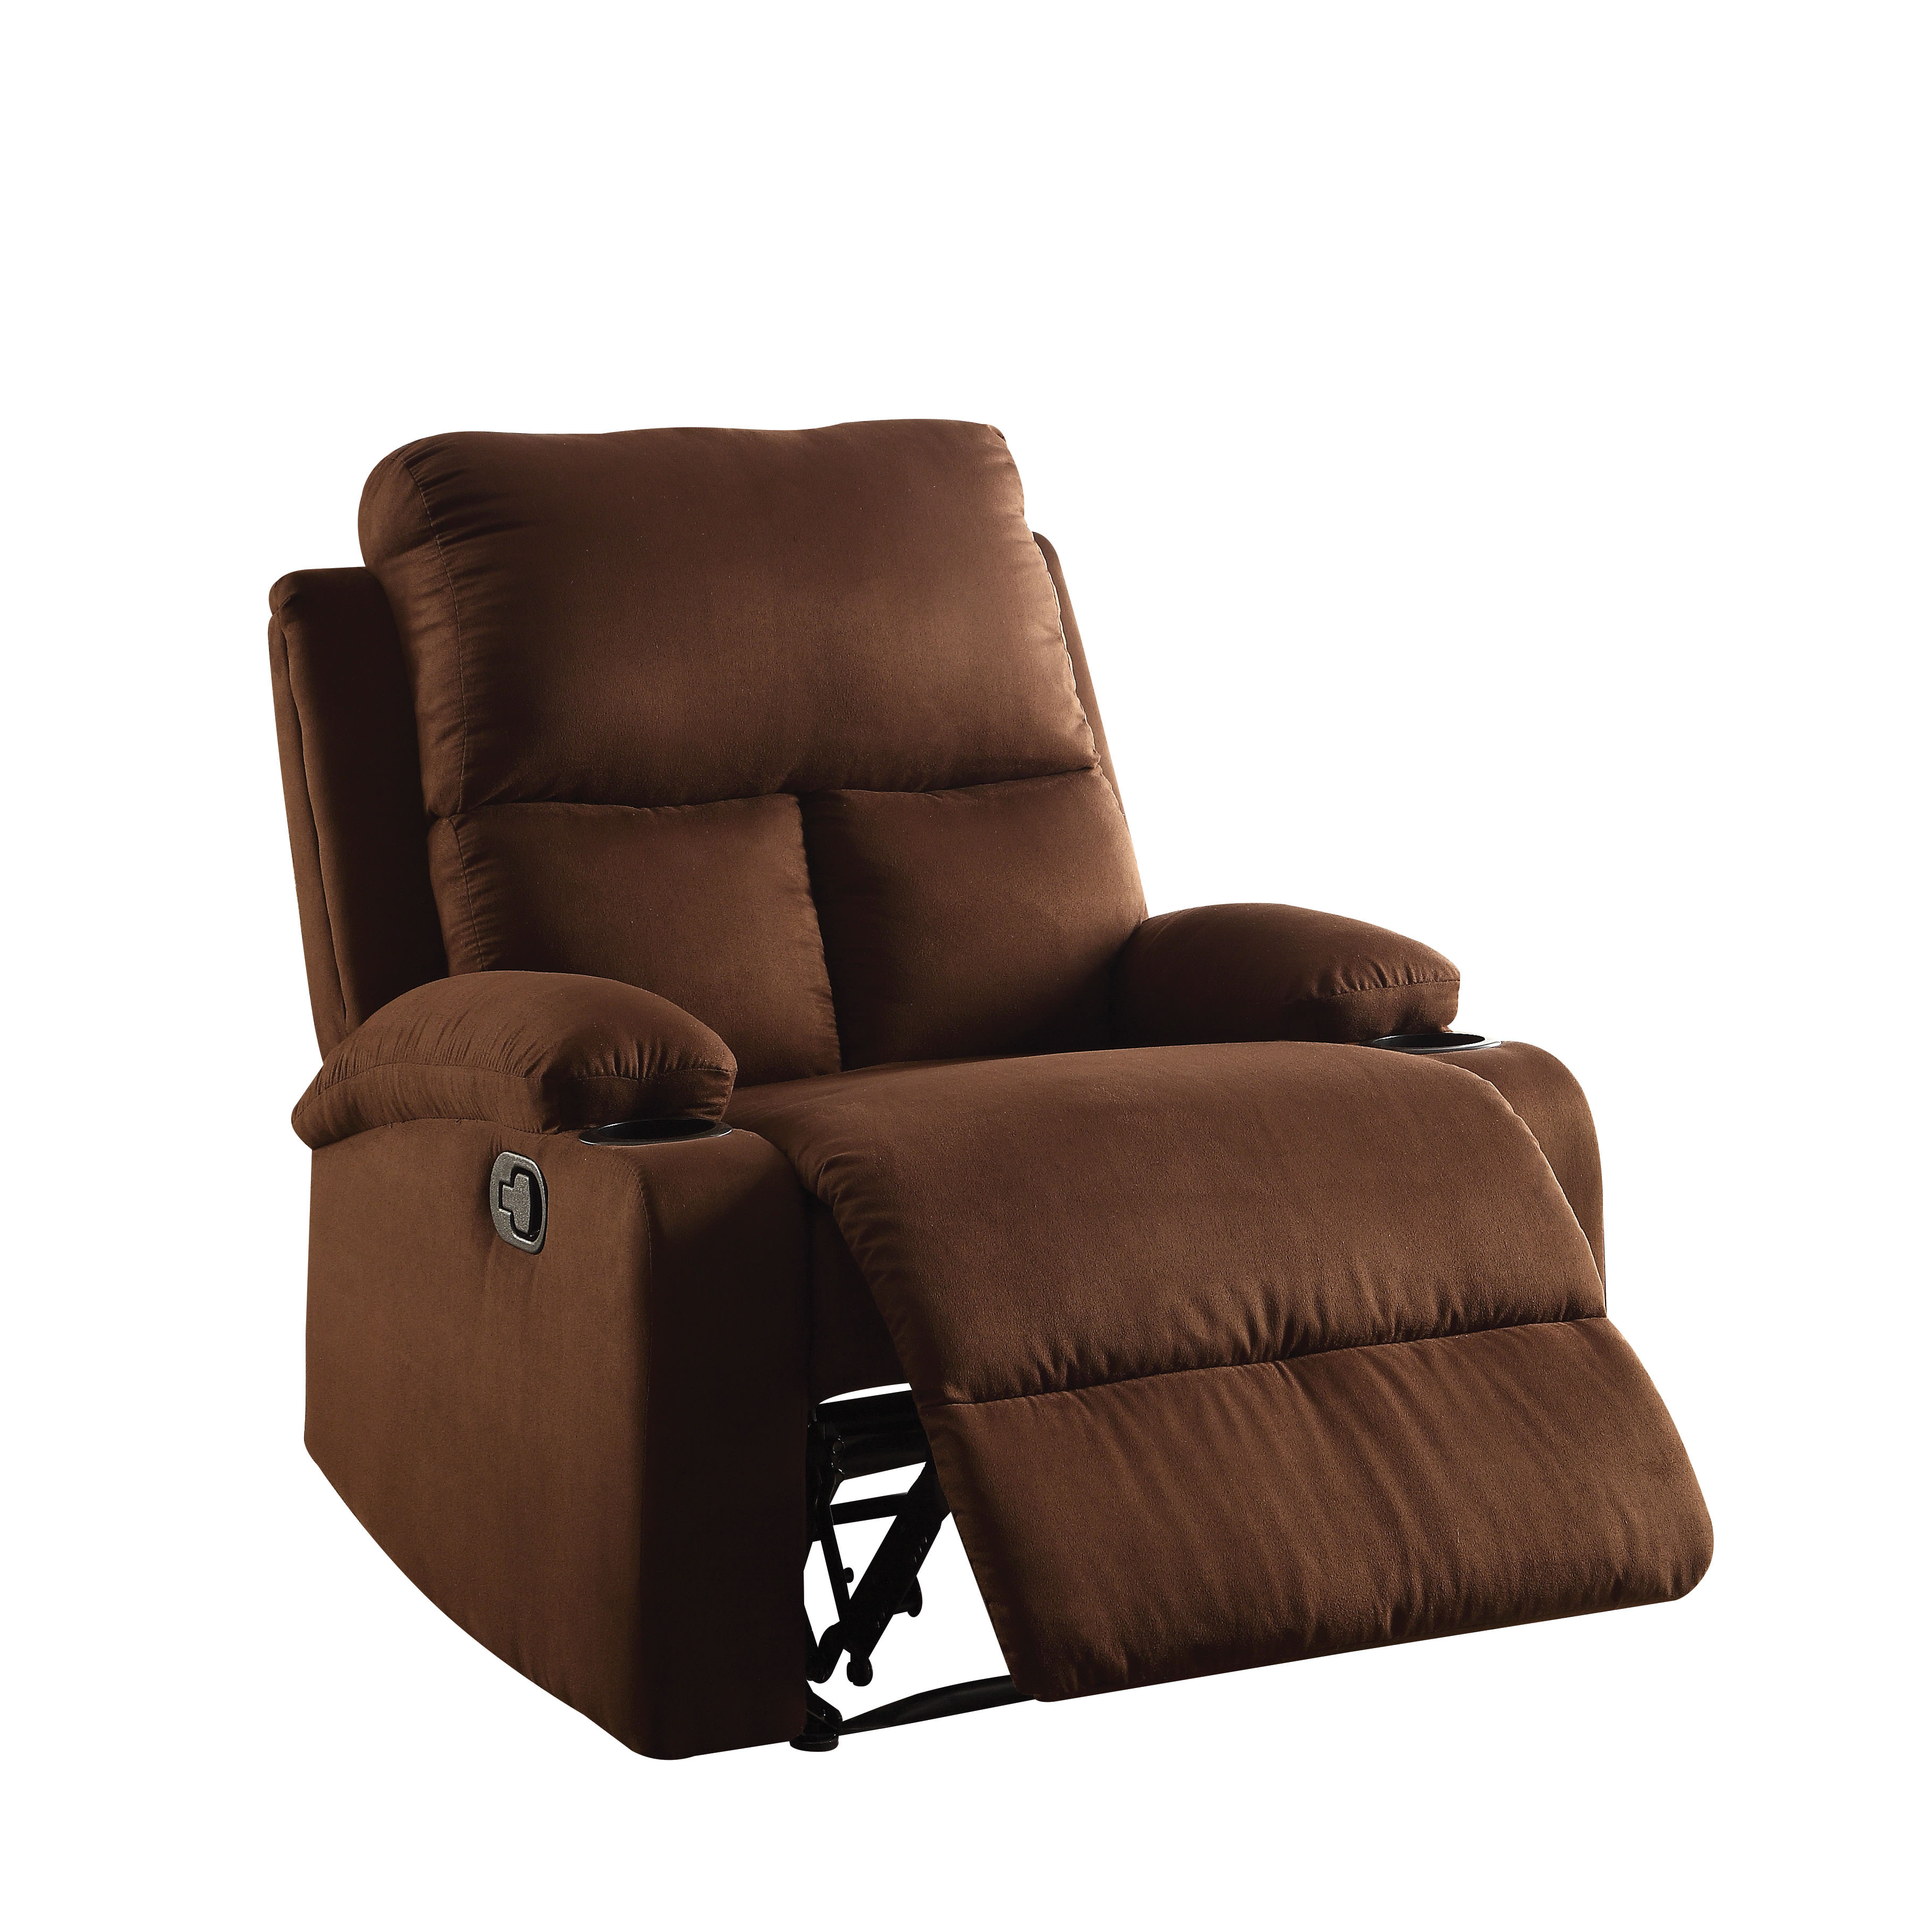 ACME Rosia Chocolate Microfiber Recliner with Cup Holders by Acme Furniture